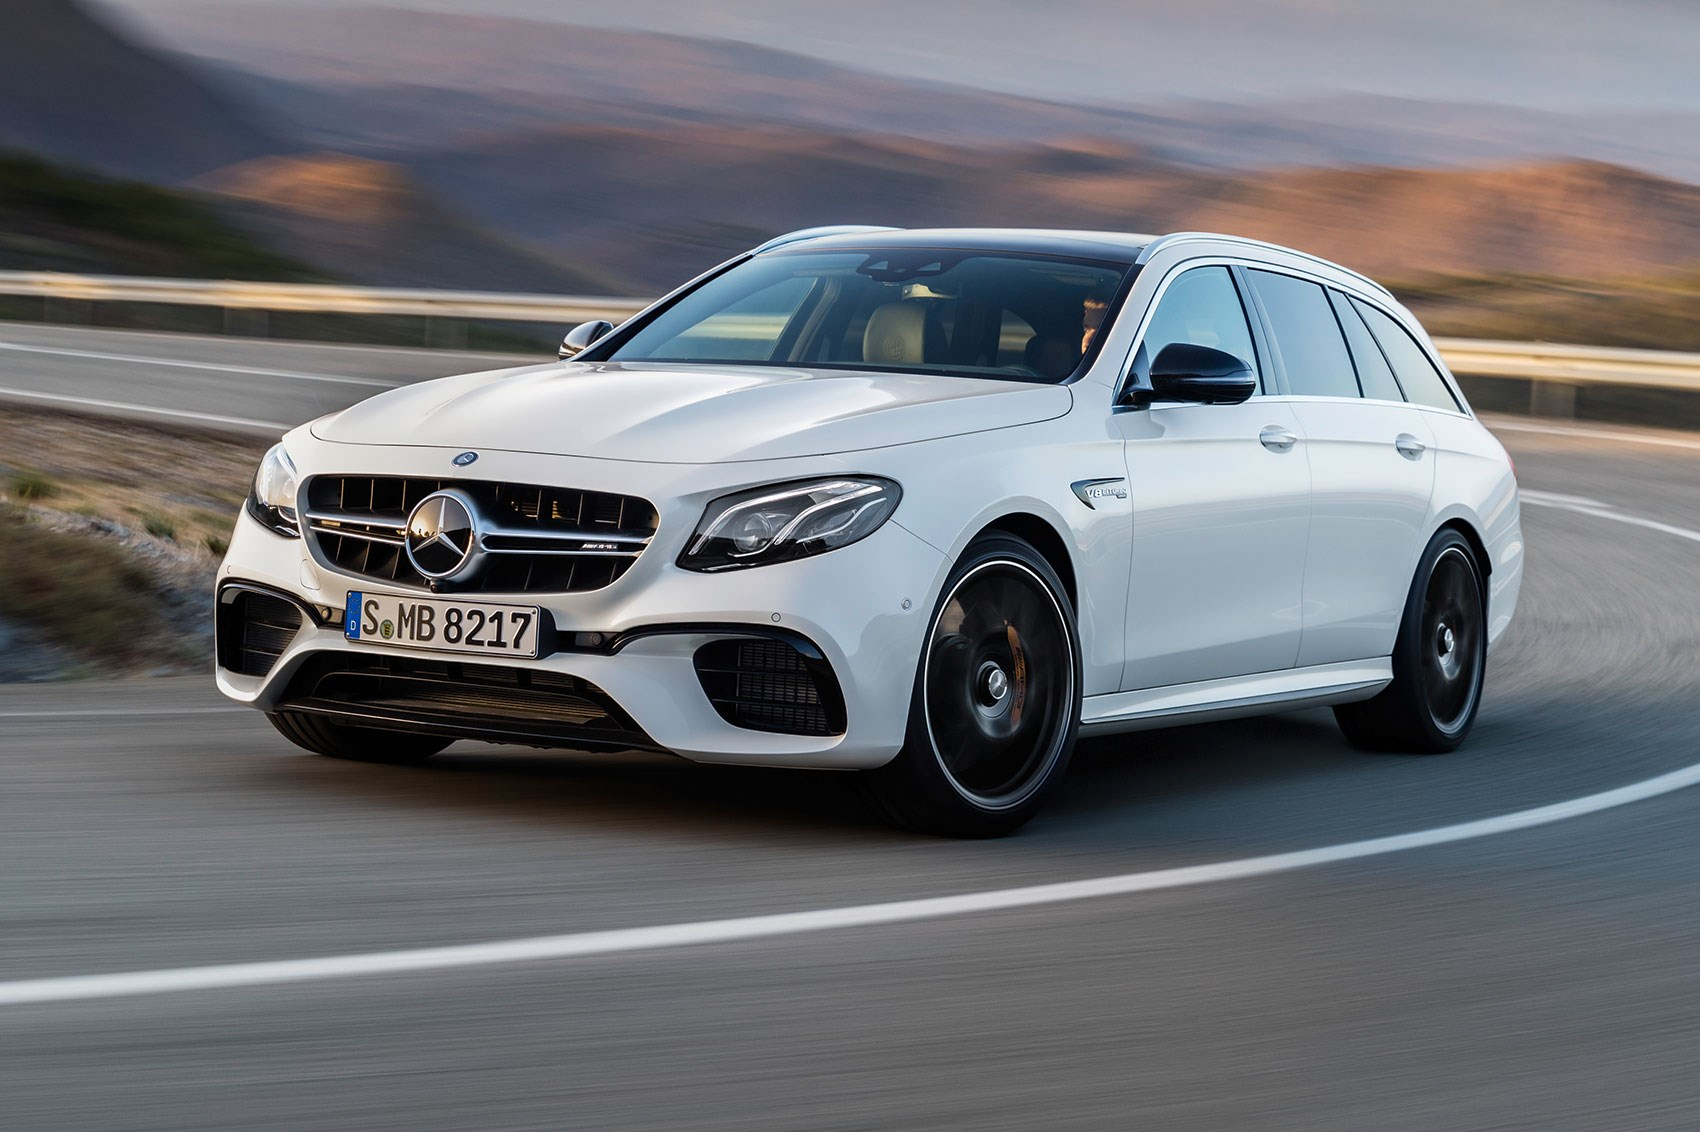 Mercedes amg e63 4matic estate prices revealed for 2017 for Mercedes benz e amg